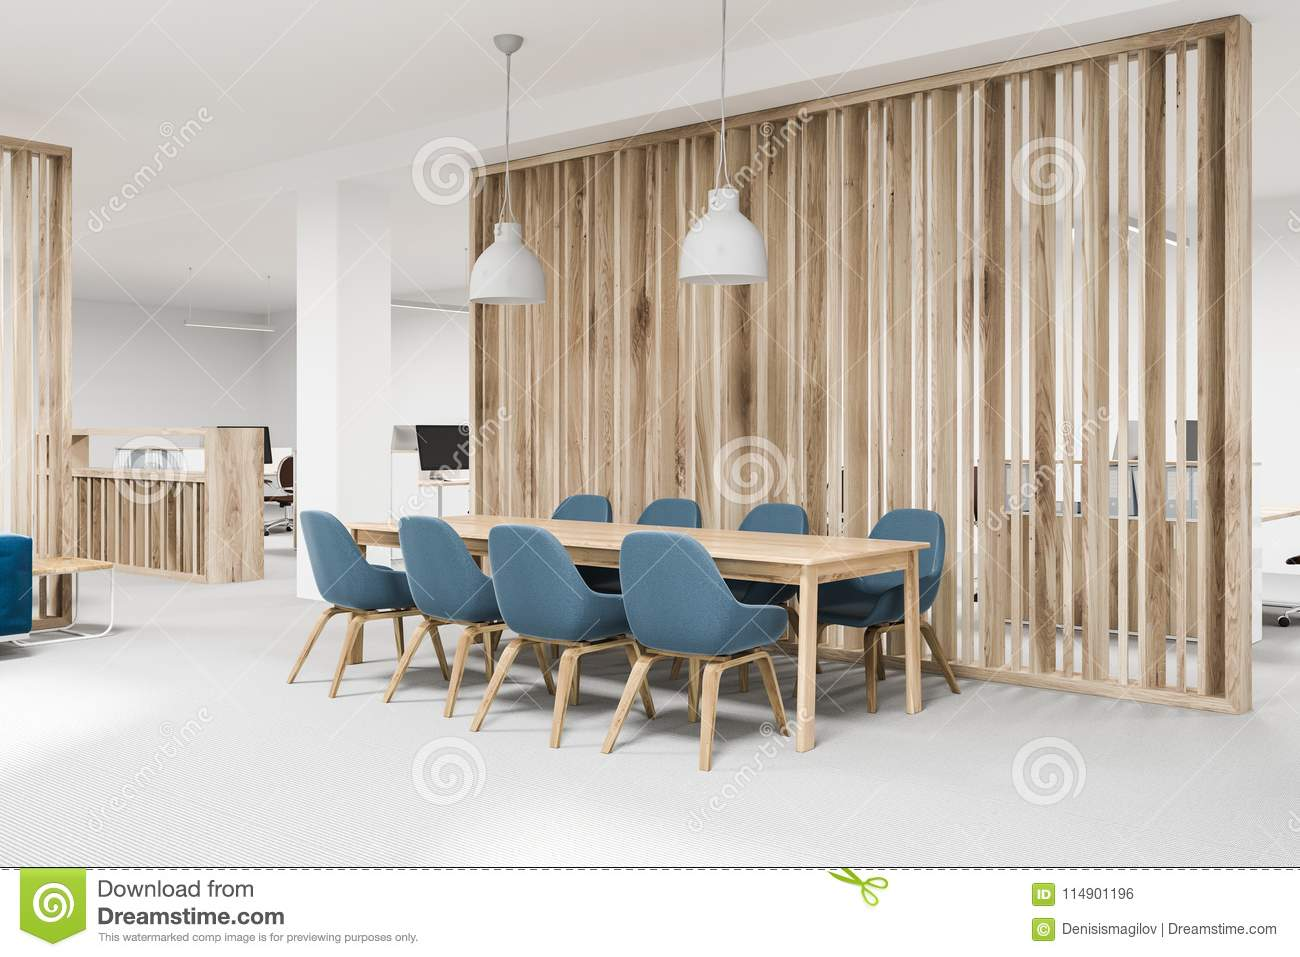 wooden meeting room corner blue chairs stock illustration rh dreamstime com wooden meeting room wooden meeting room